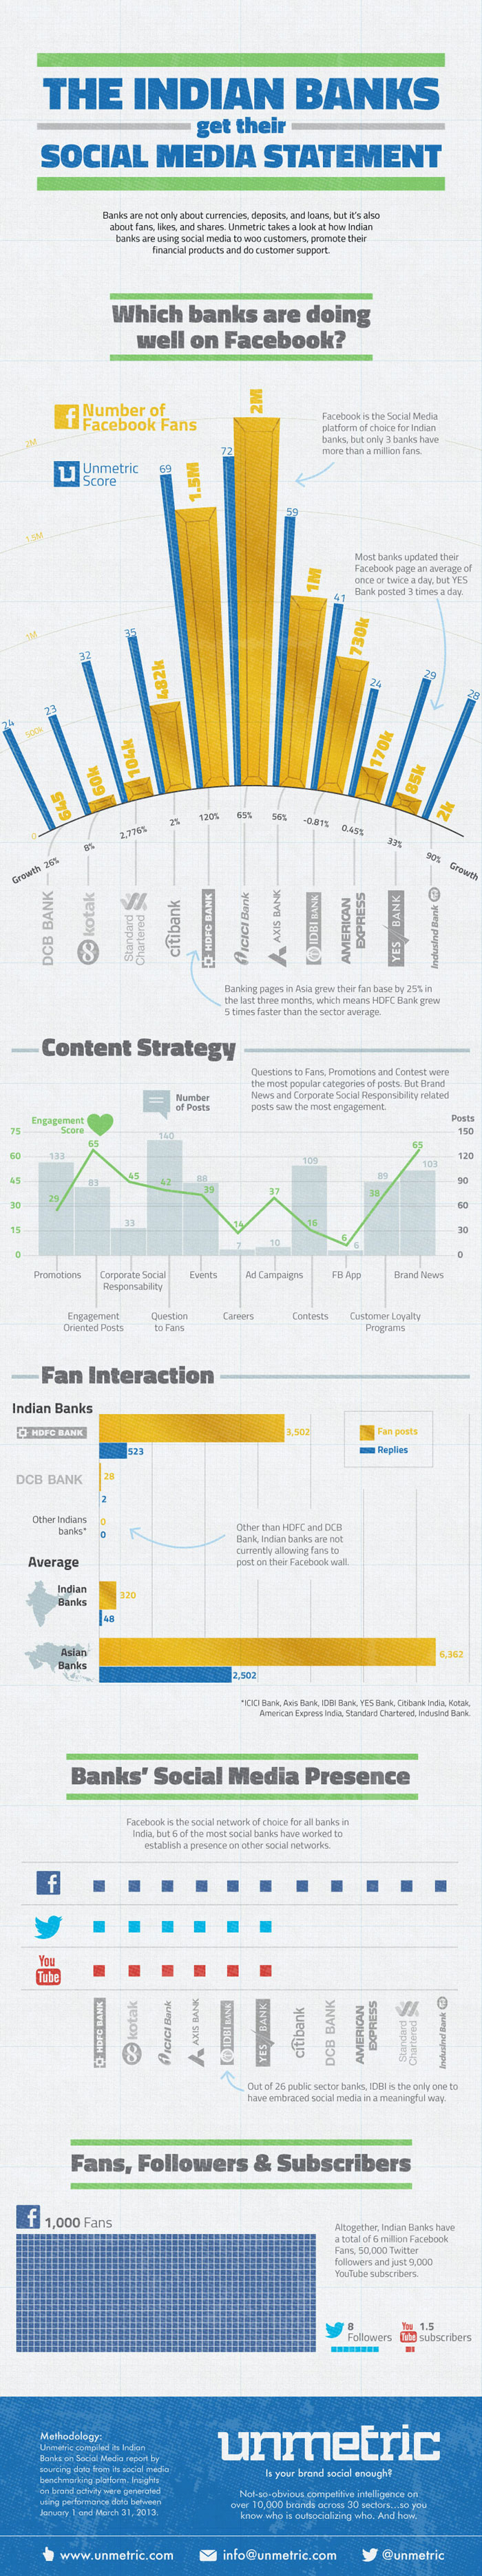 indian banking industry on social media